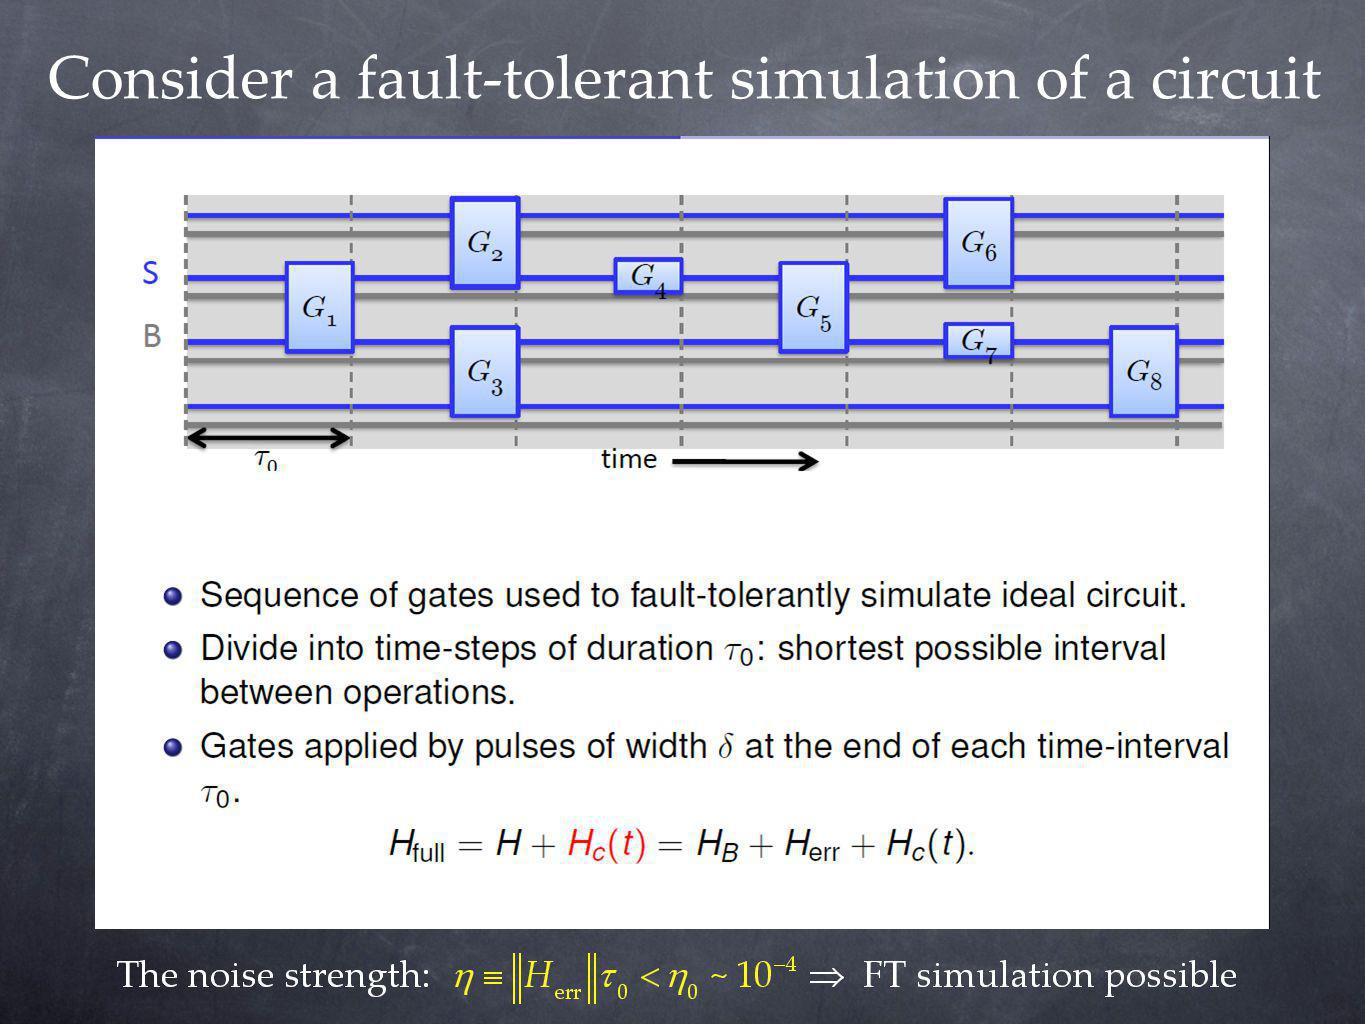 Consider a fault-tolerant simulation of a circuit